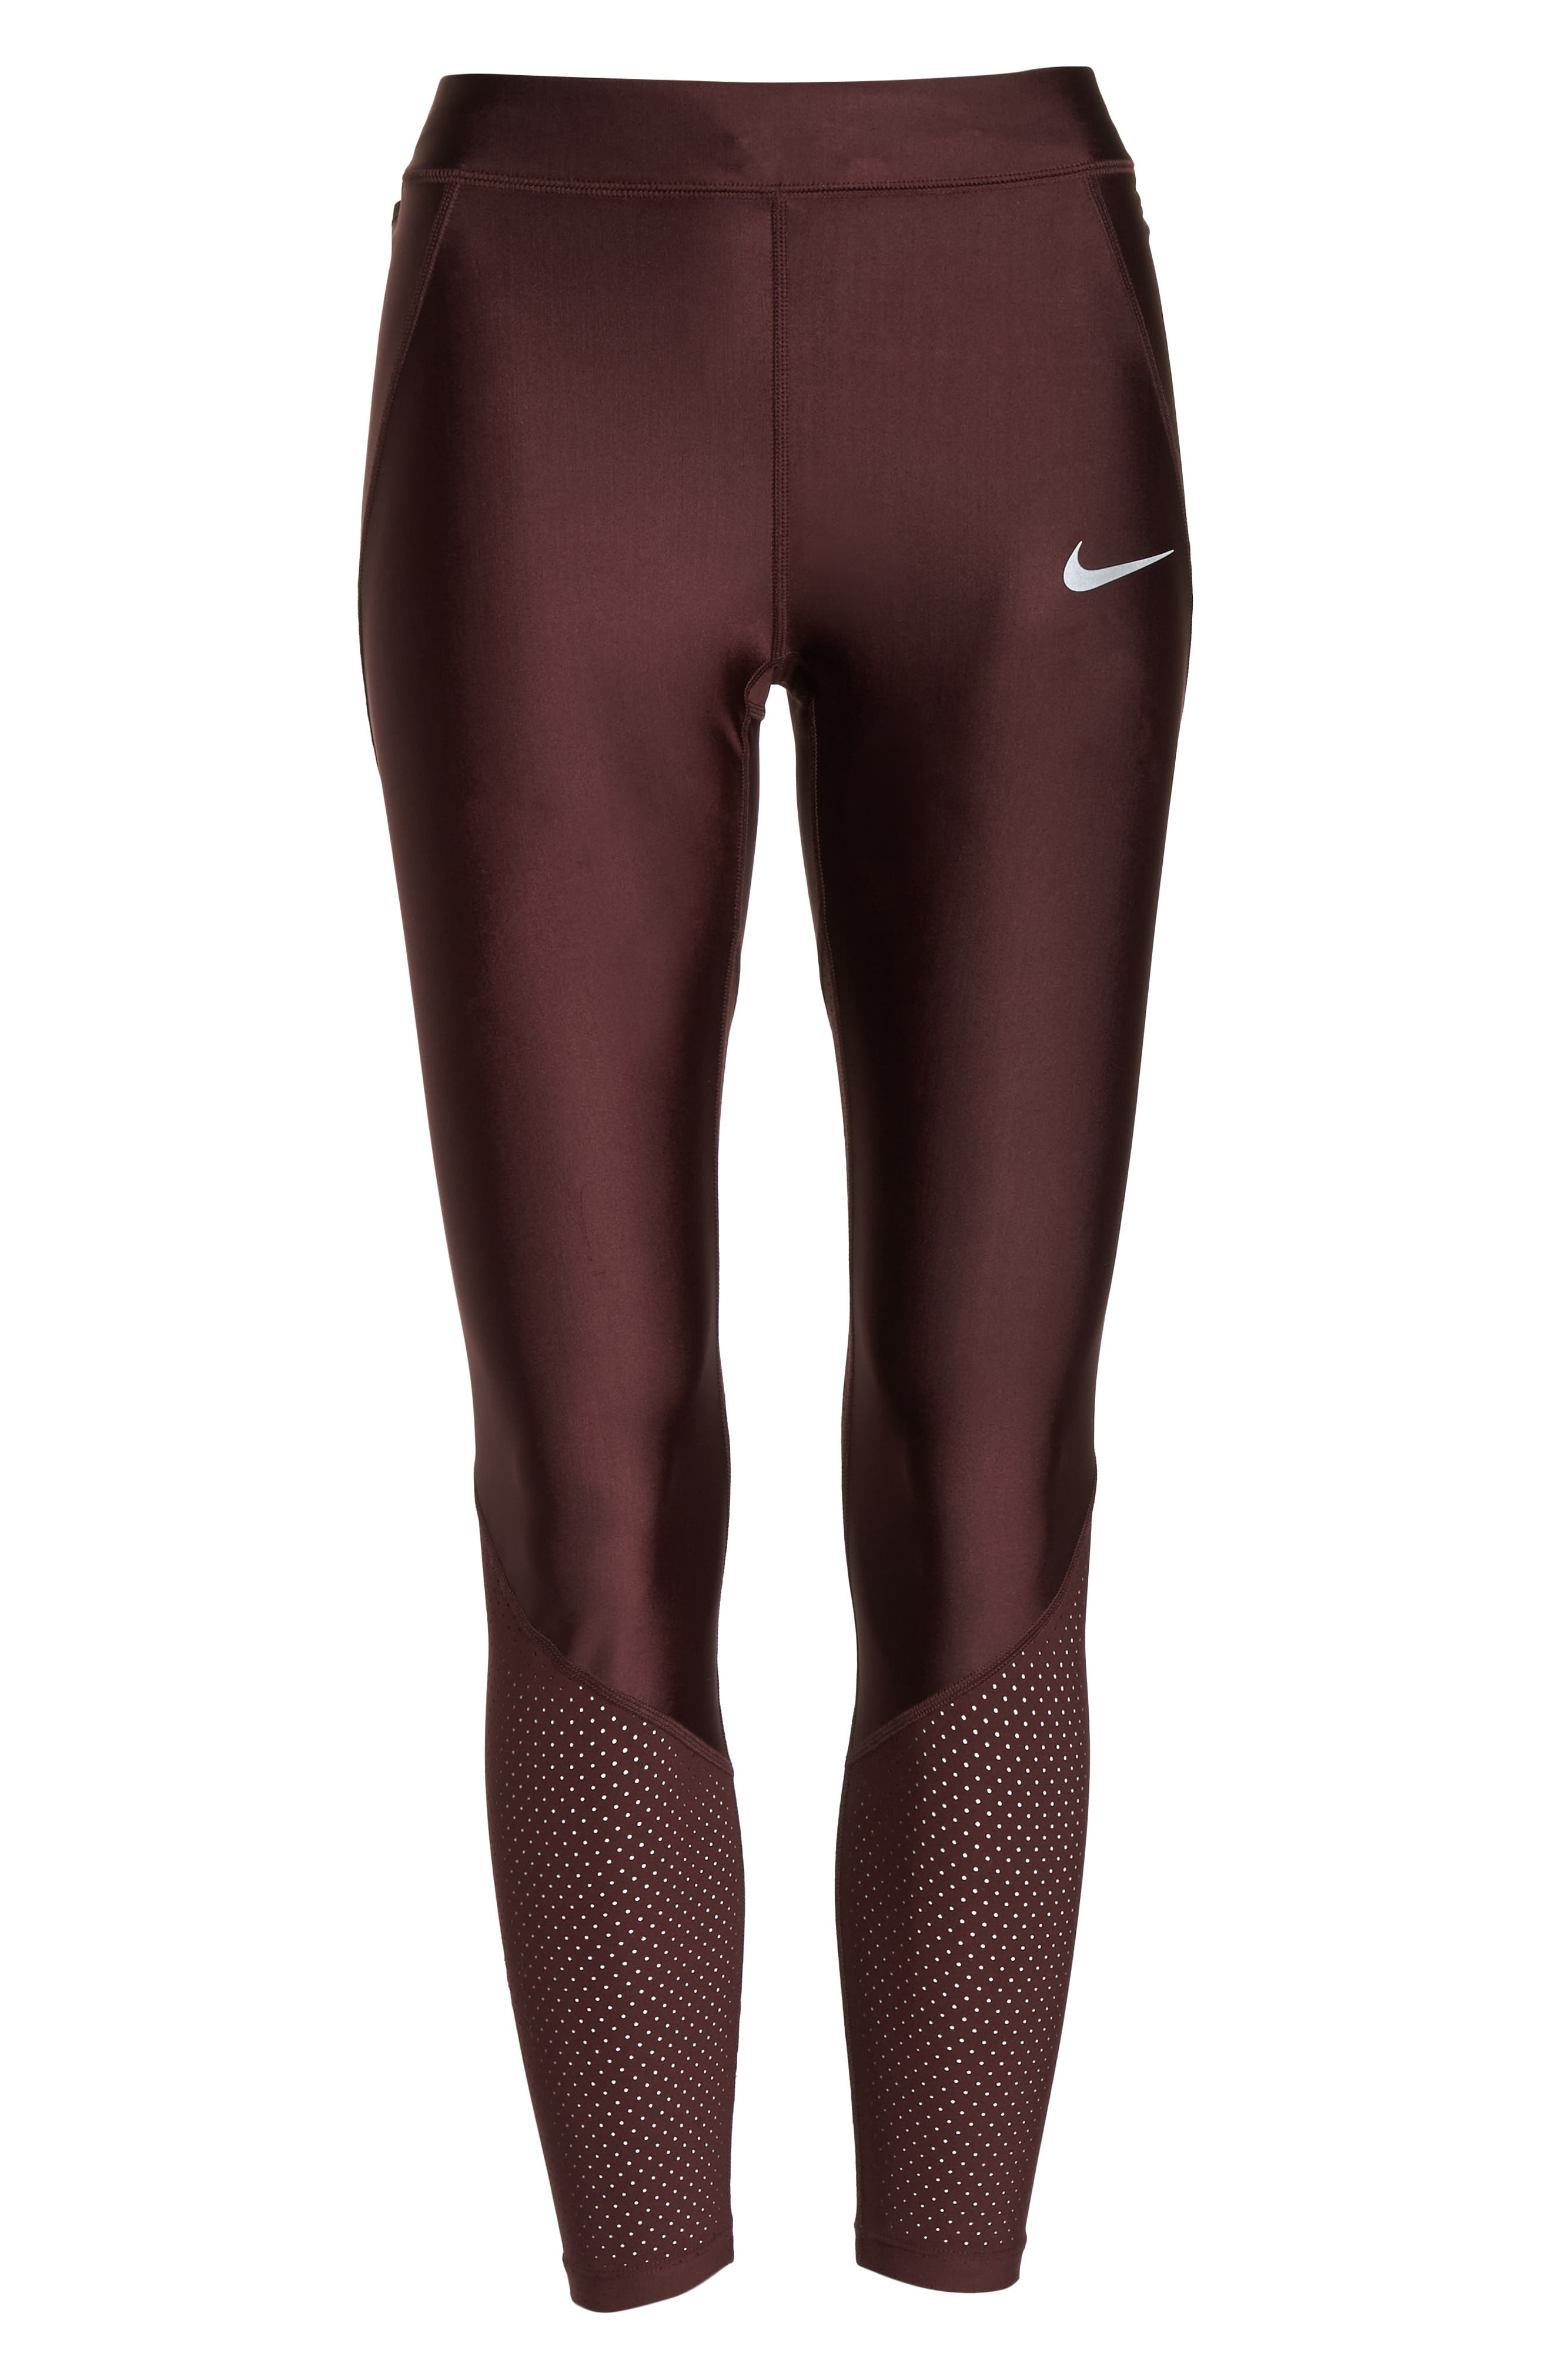 Speed Cool Running Tights,                             Alternate thumbnail 7, color,                             930